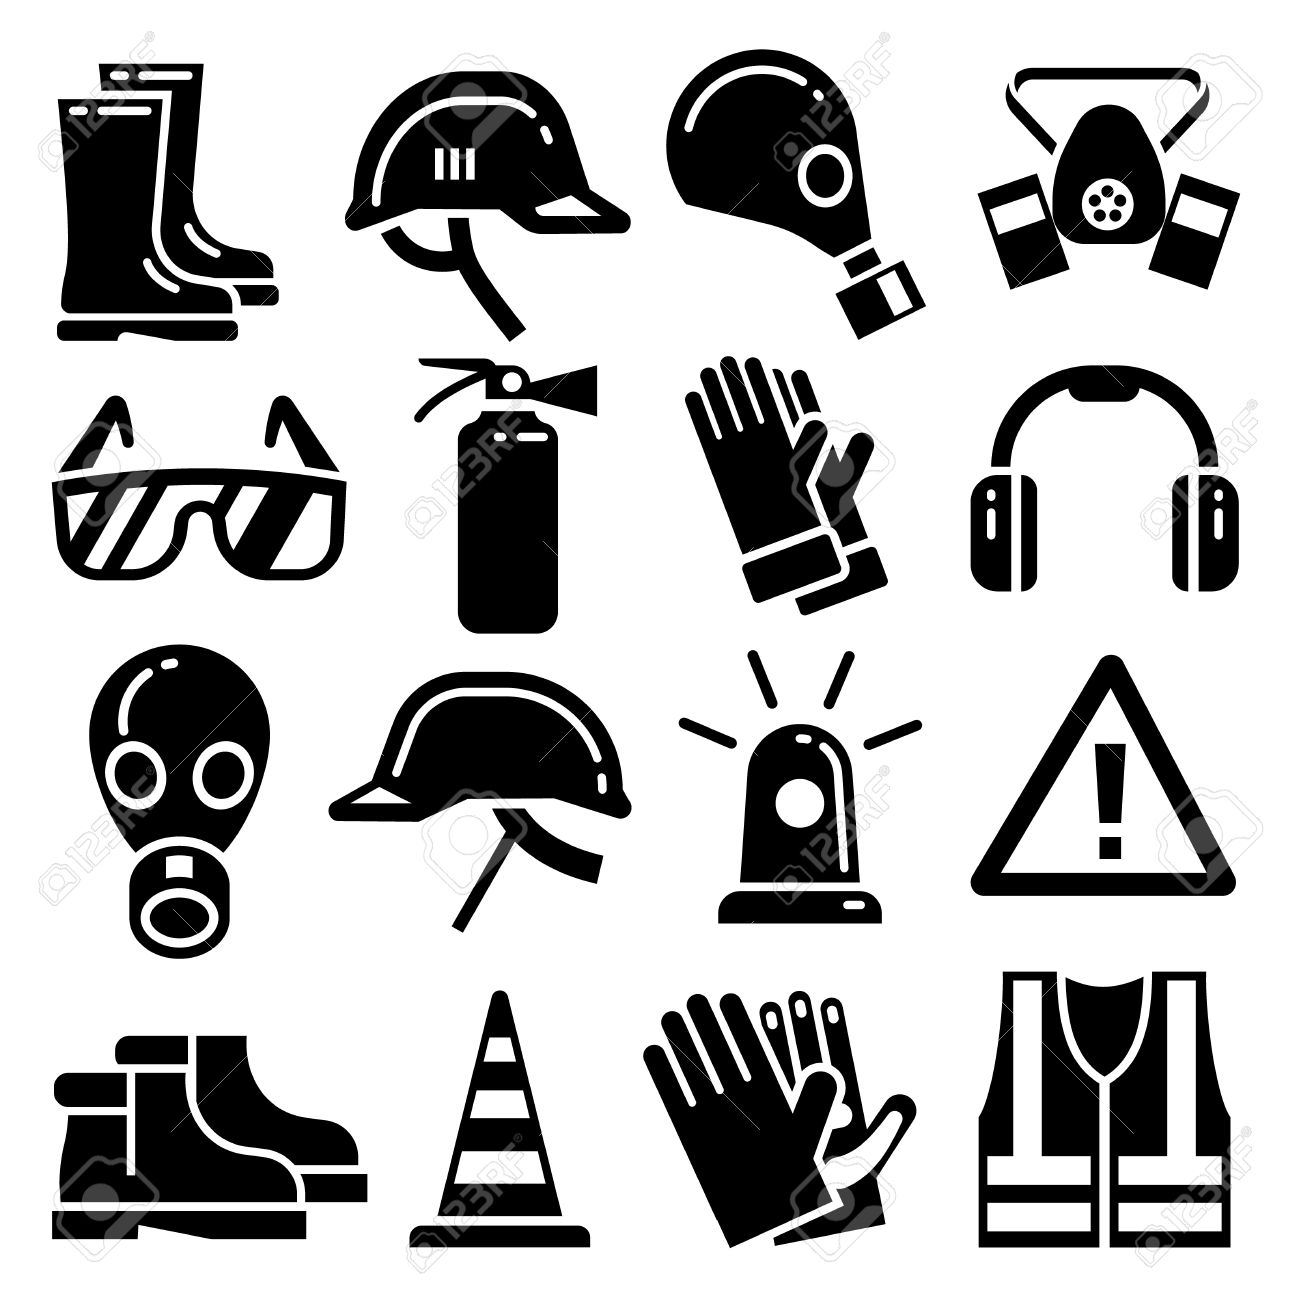 Personal protective equipment vector icons set. Helmet protection, mask and glove for work and protection illustration - 57404972